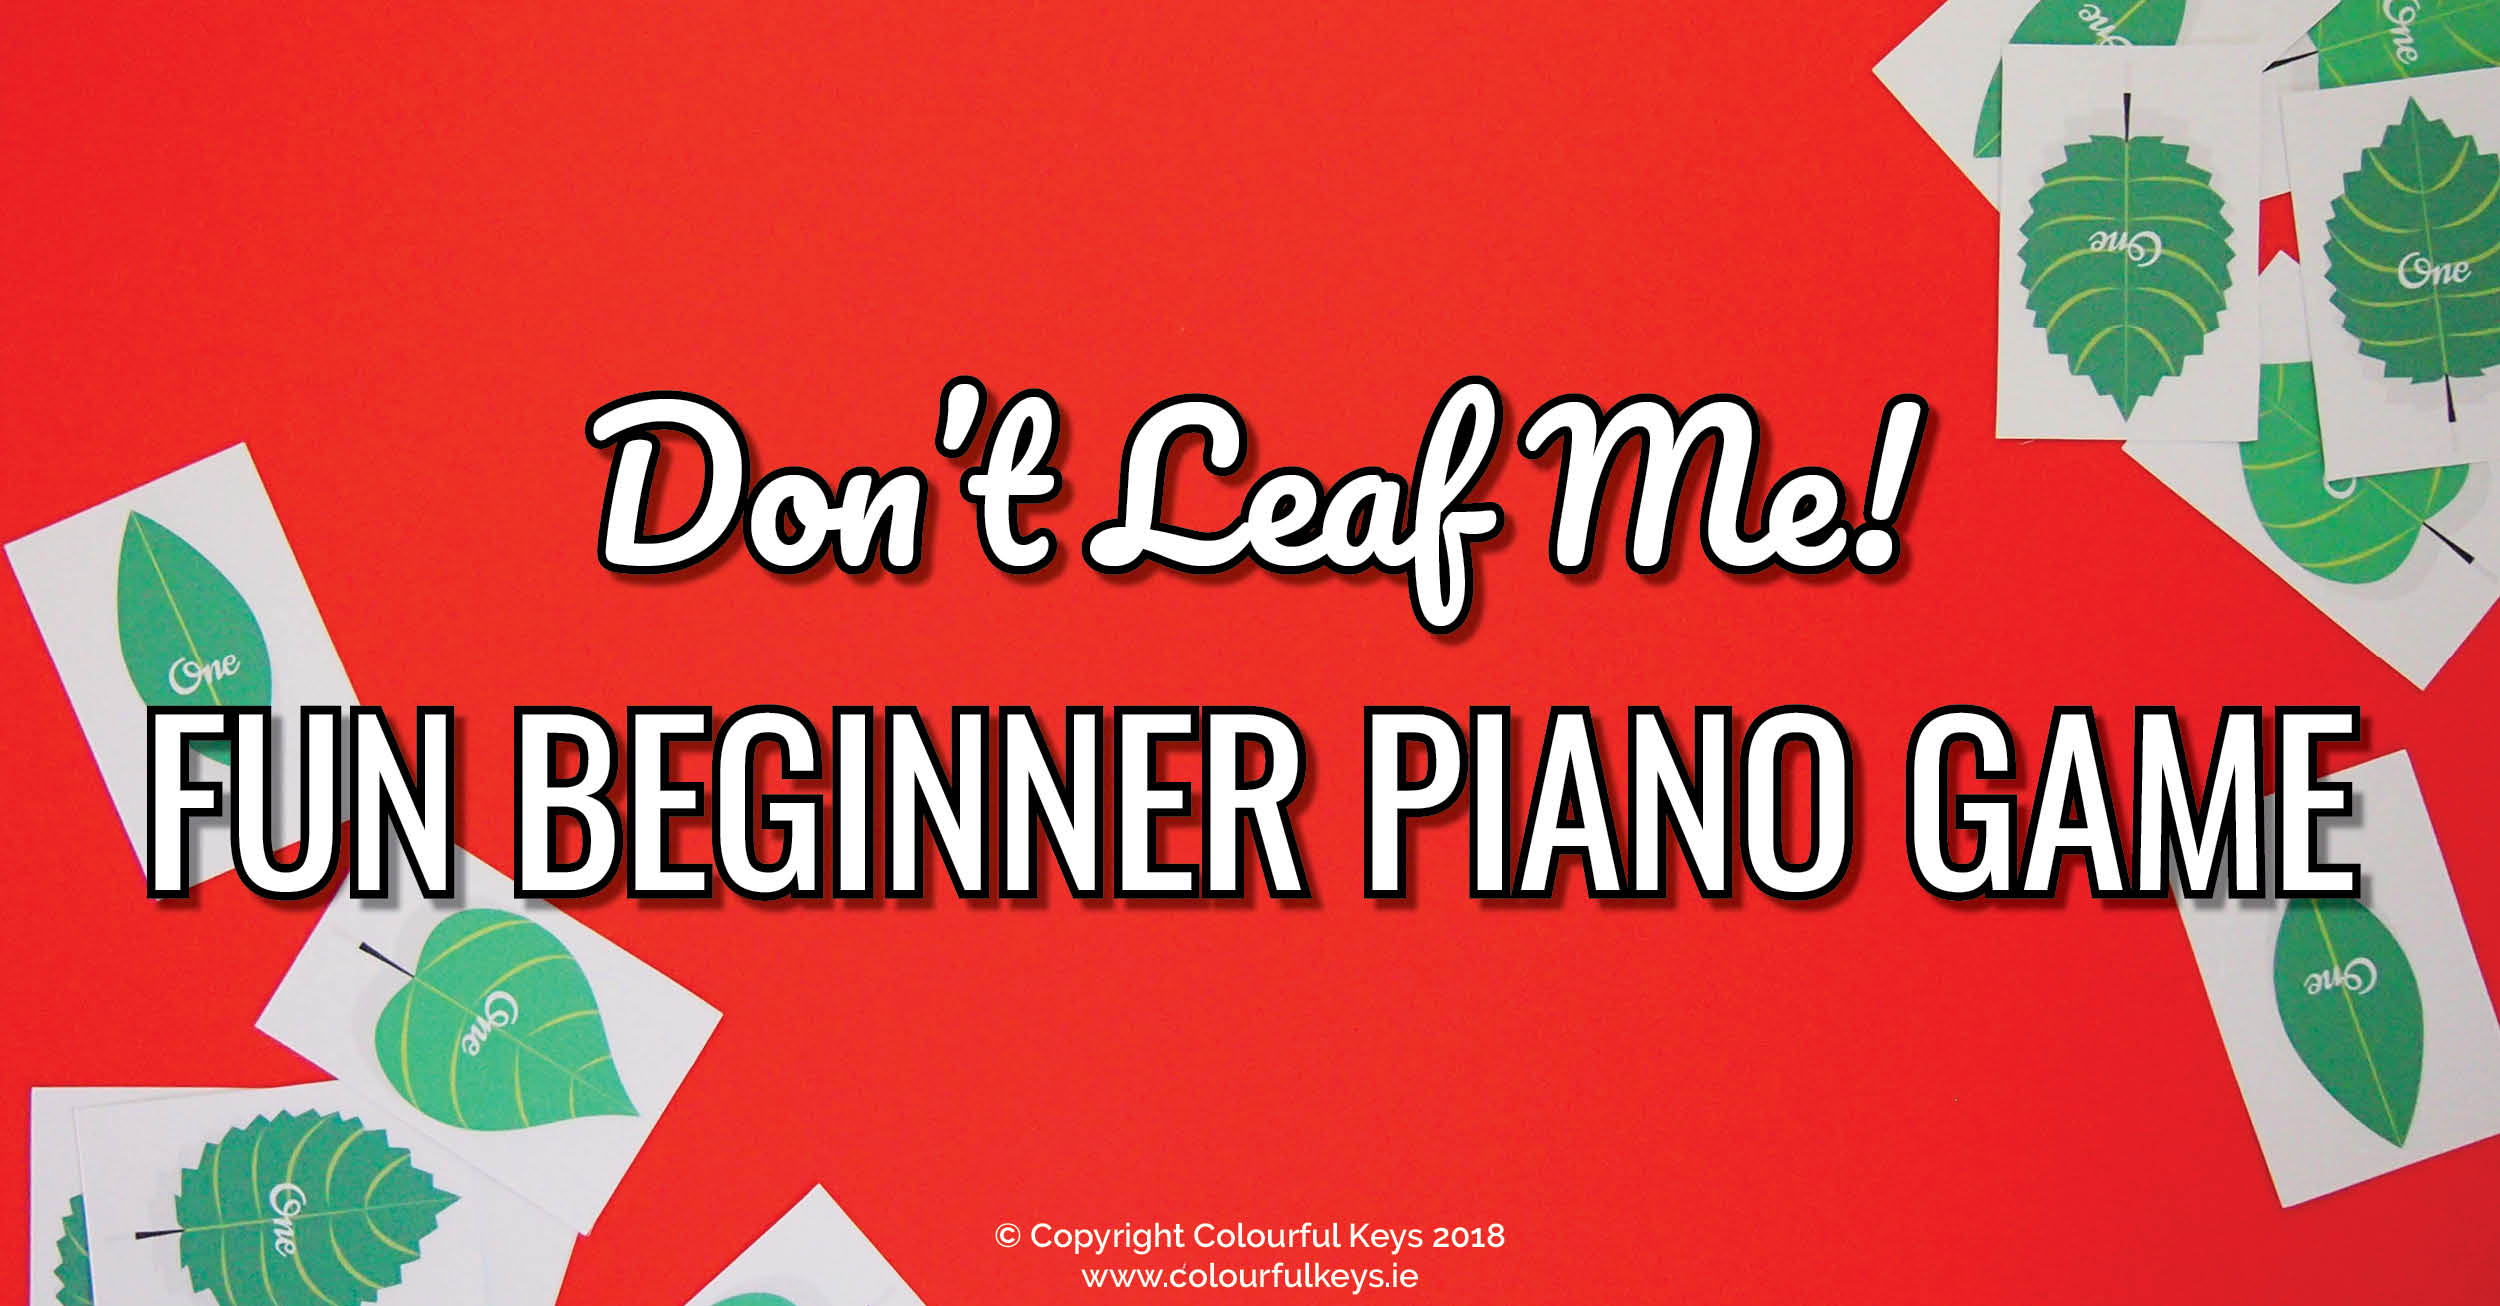 Leave September Forgetfulness Behind this Piano Game